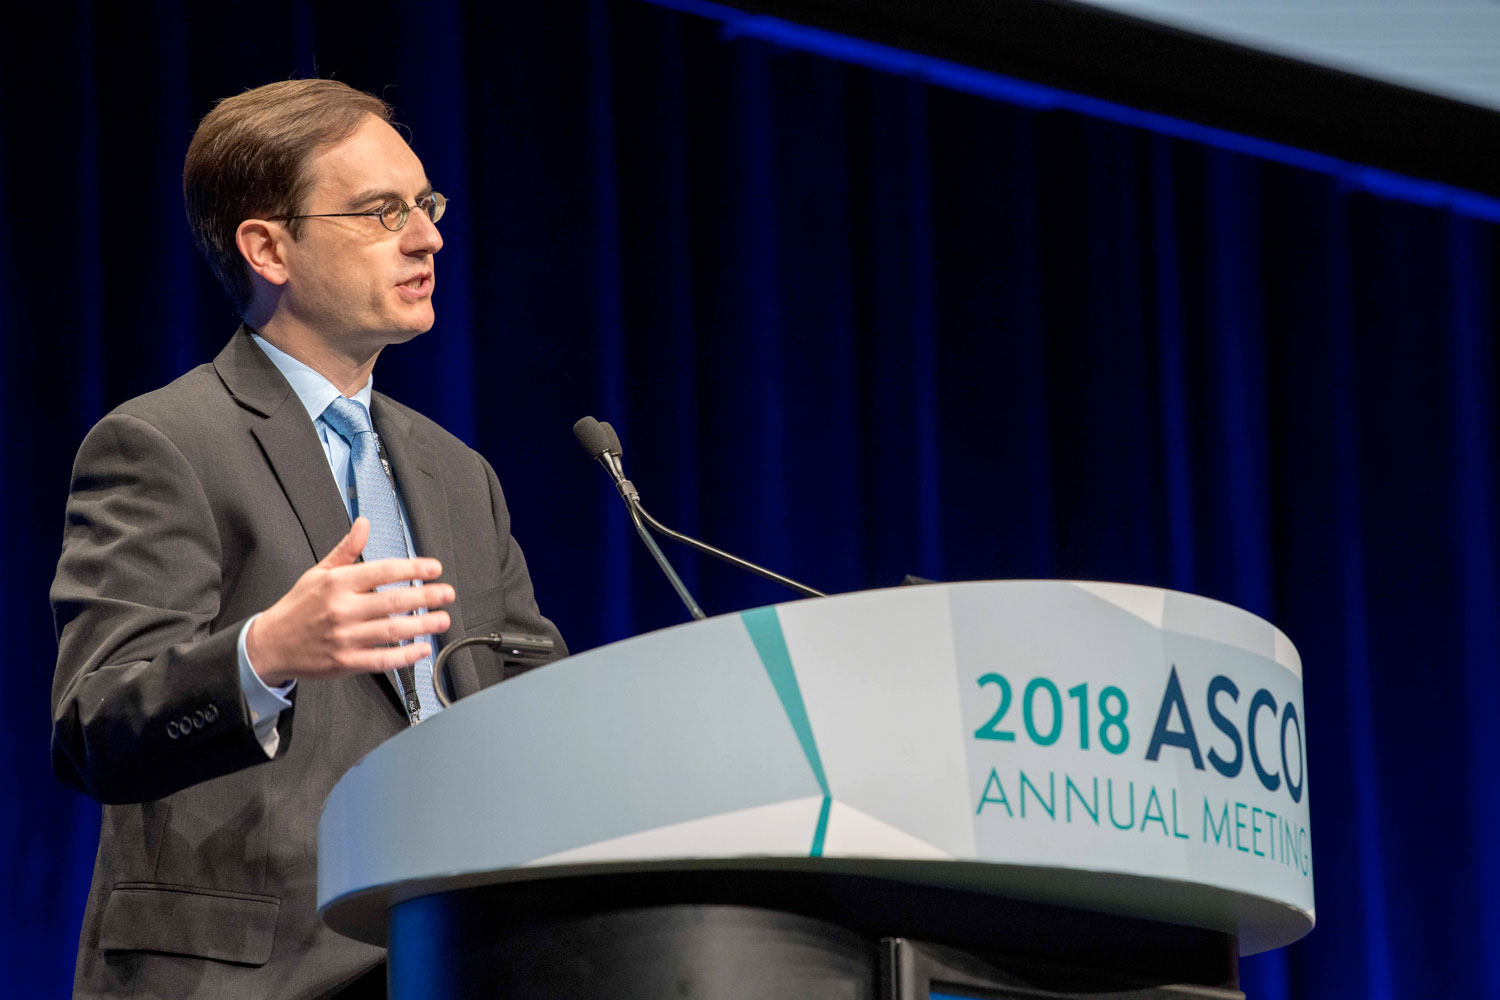 Panagiotis Konstantinopoulos speaking at ASCO18